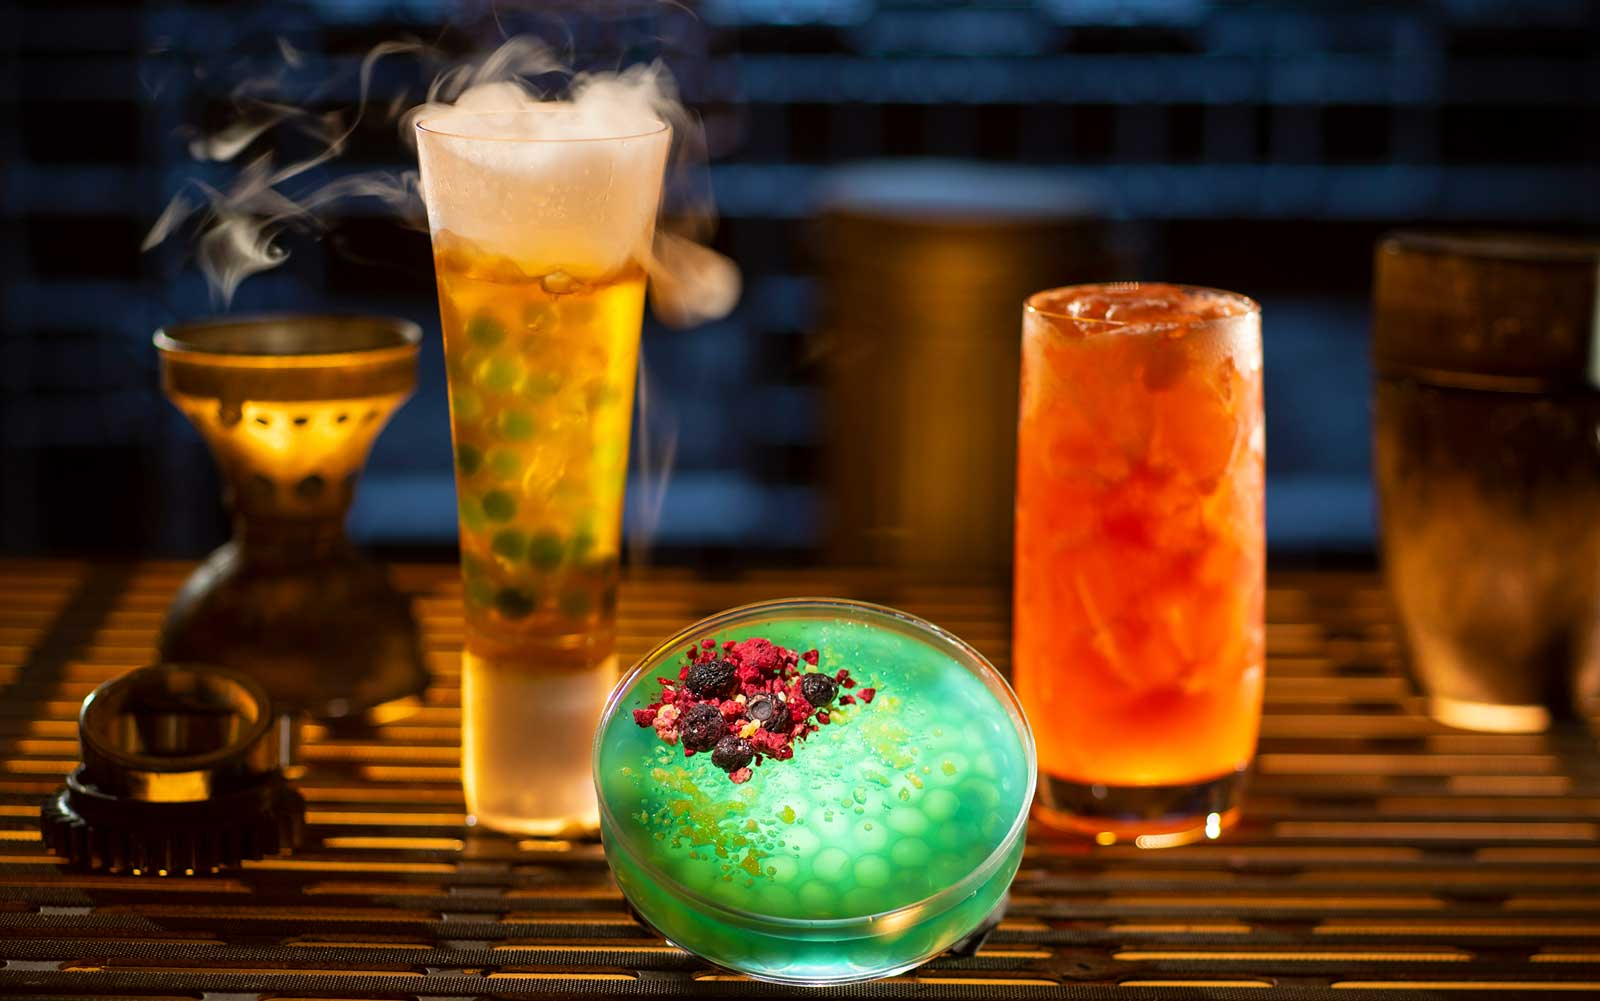 Star Wars Galaxy Edge at Disneyland - Alcoholic Beverages